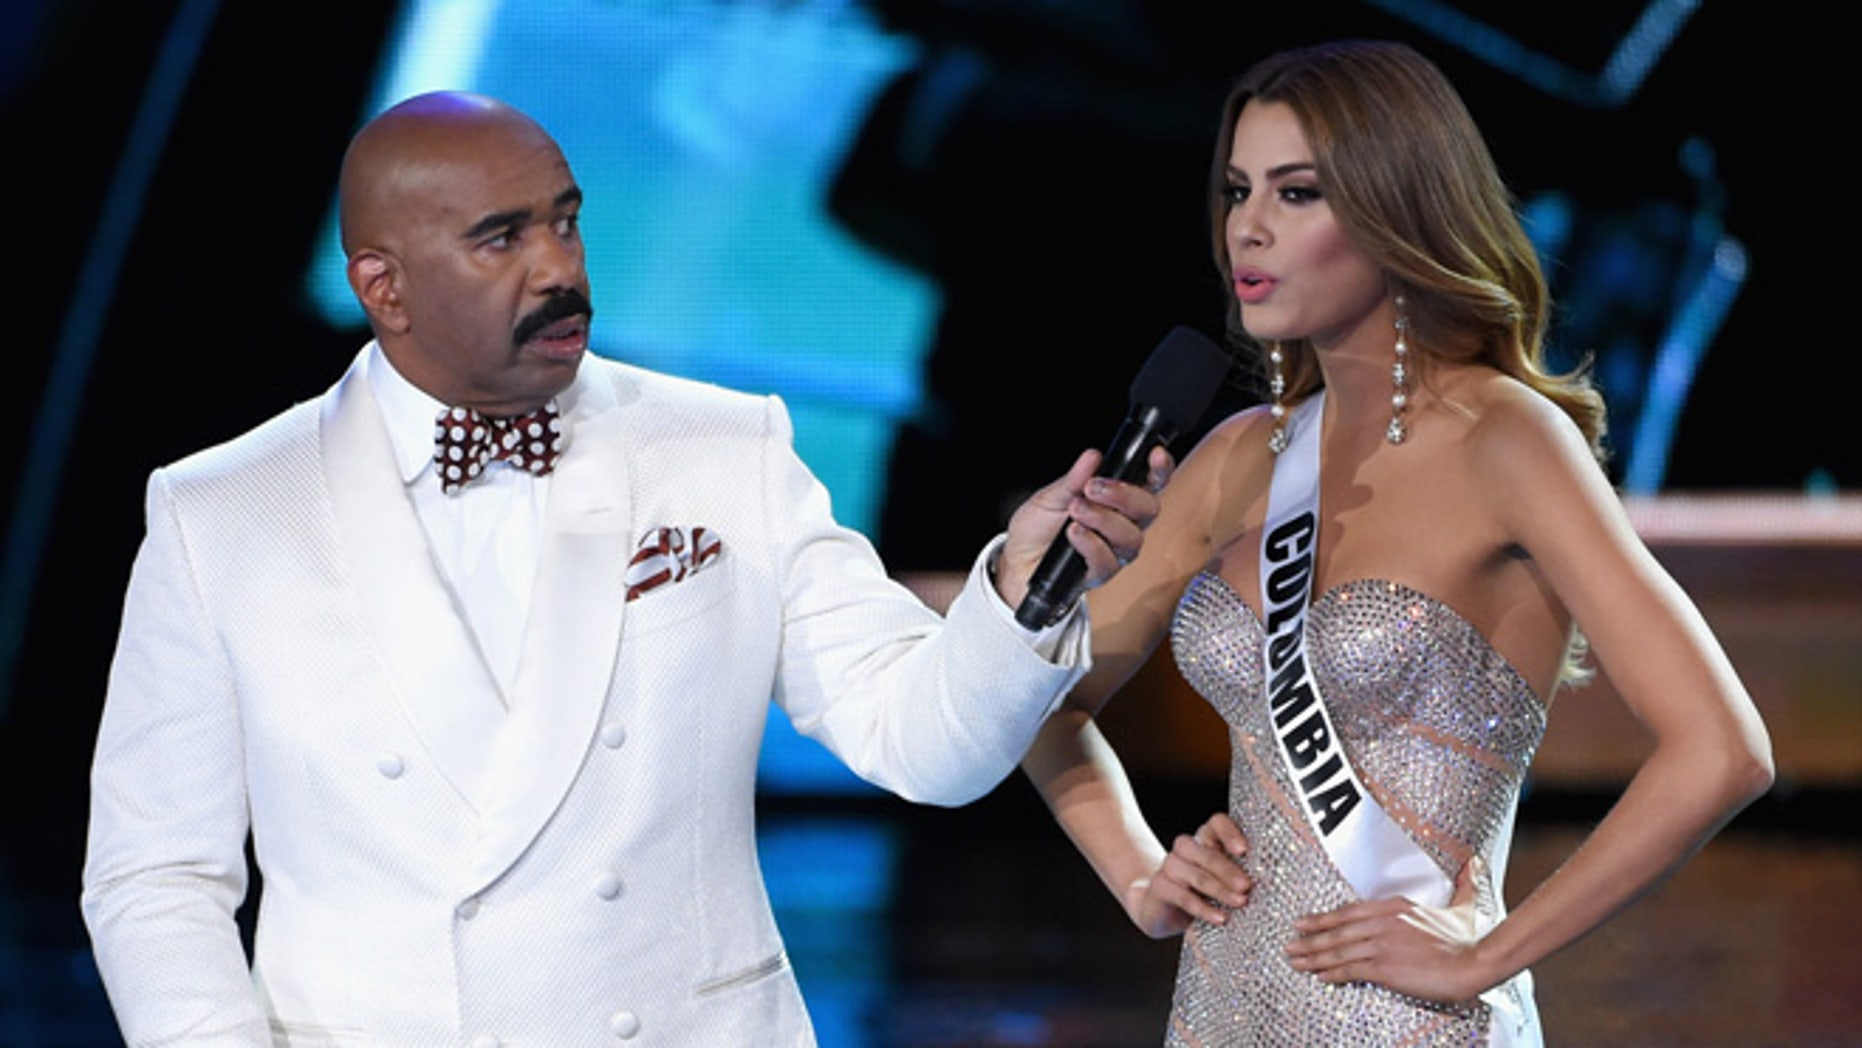 Steve Harvey listens as Miss Colombia answers a question during the 2015 Miss Universe Pageant on Dec. 20, 2015.